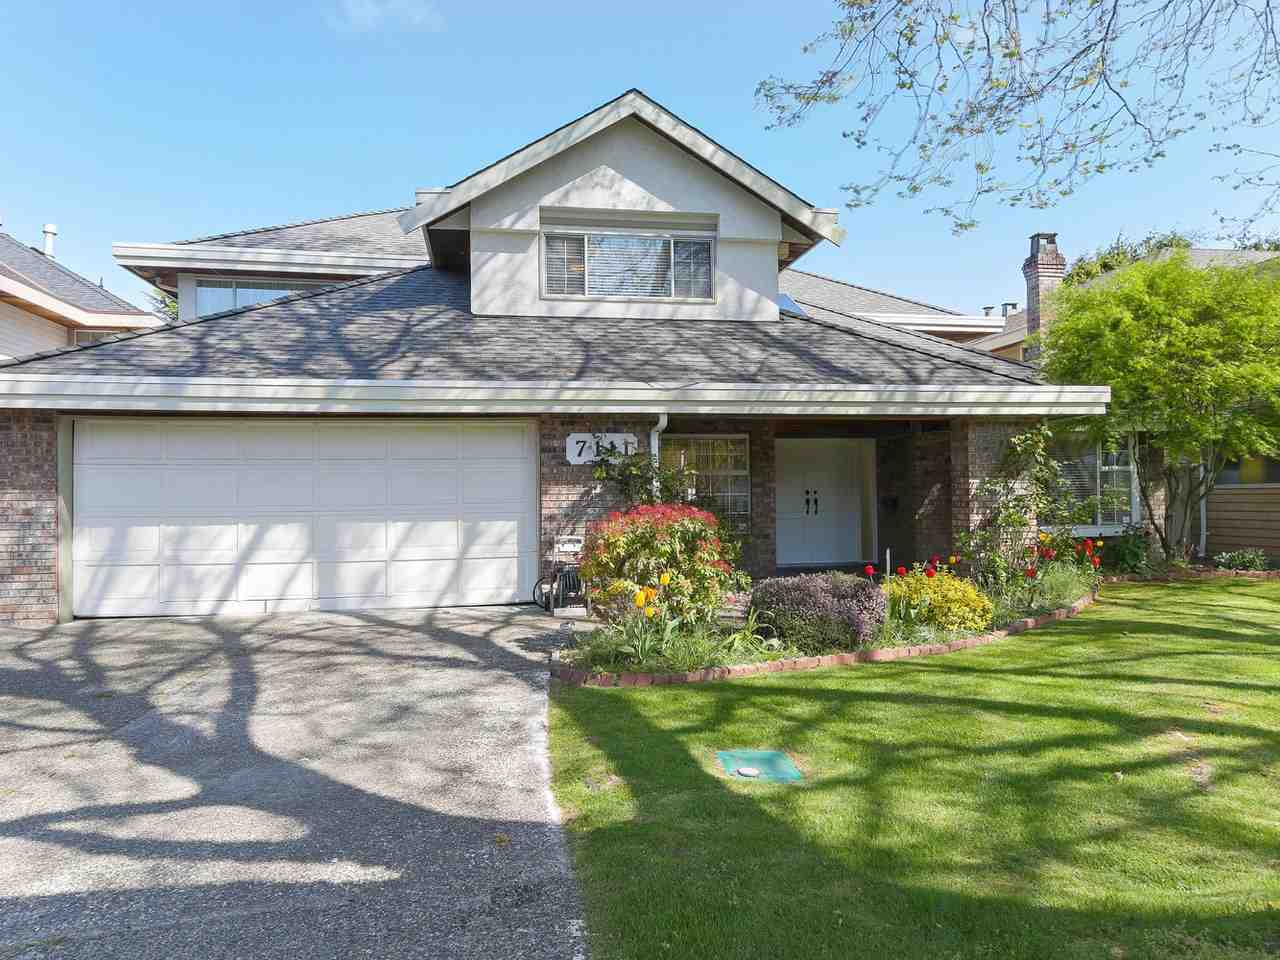 7111 BUTTERMERE PLACE - MLS® # R2399397